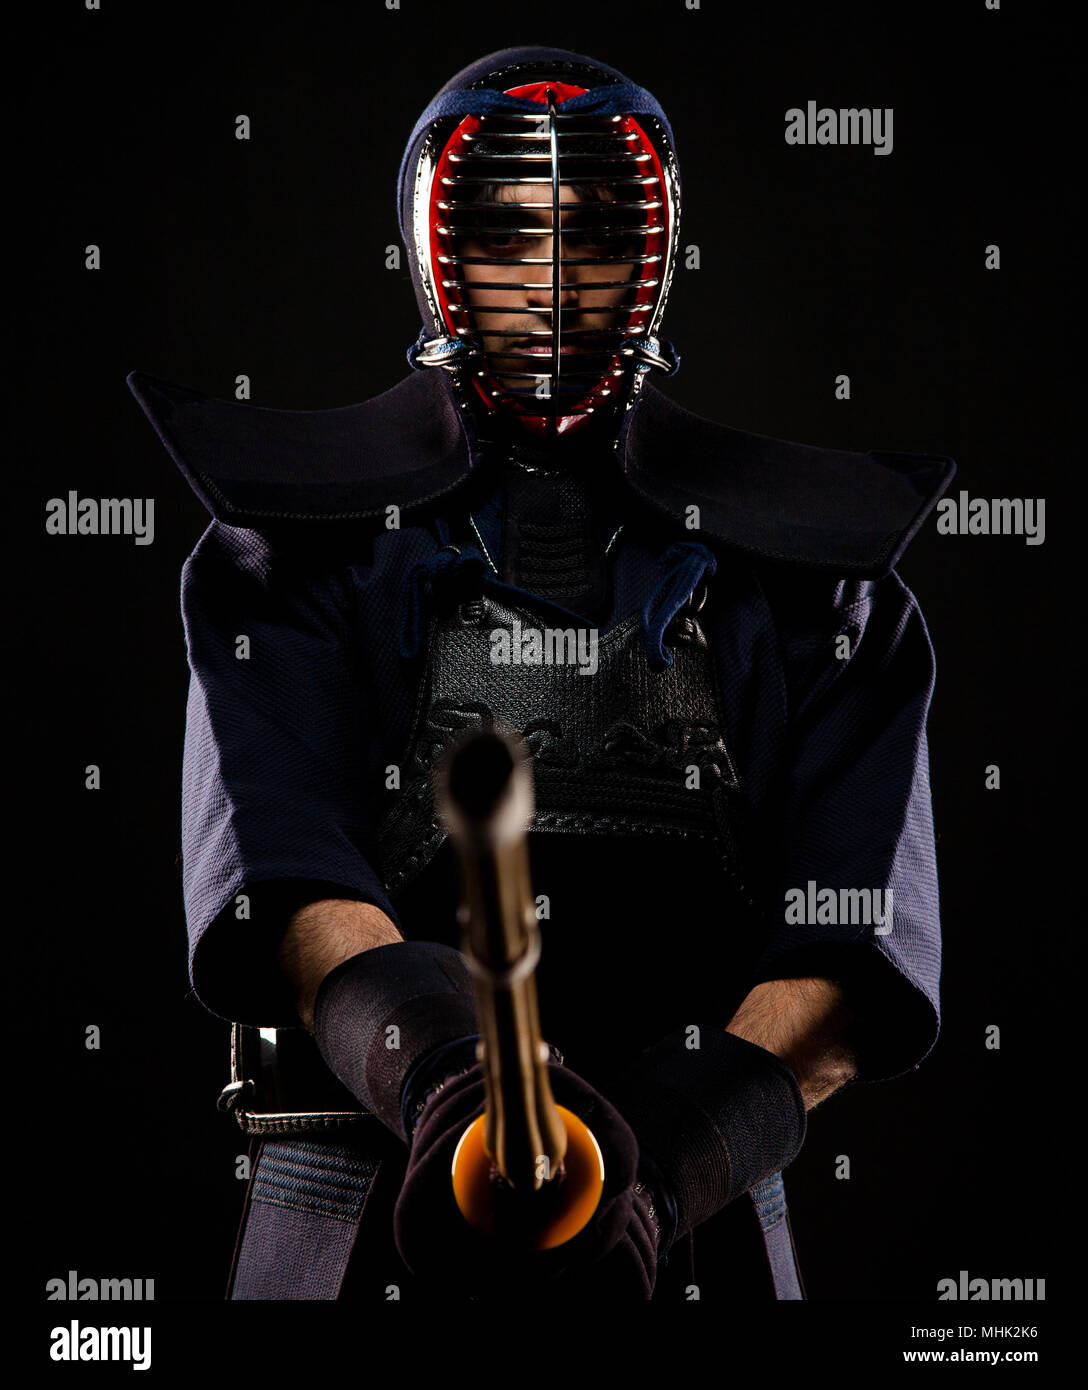 A confident kendoka geared in his bogu and wielding a shinai in preparation of Kendo - traditional Japanese Martial Art. - Stock Image